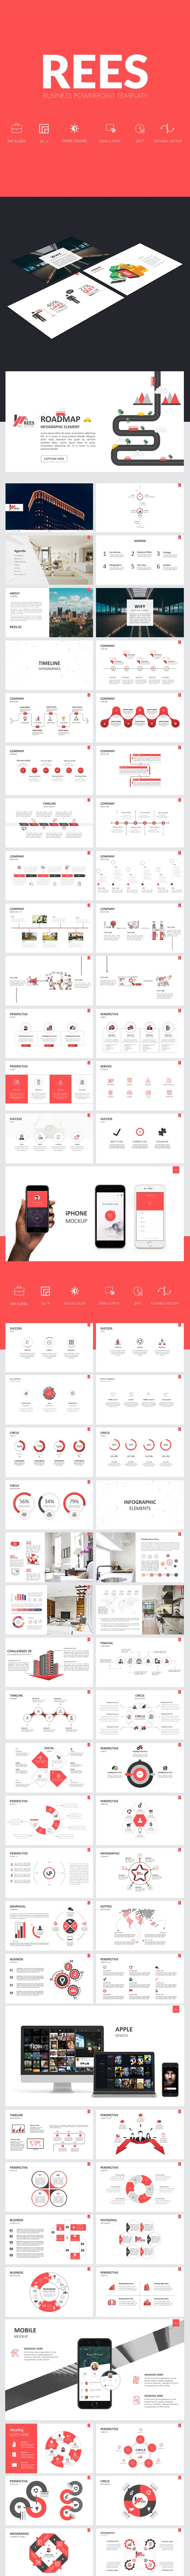 Rees Business Powerpoint Template - Business PowerPoint Templates